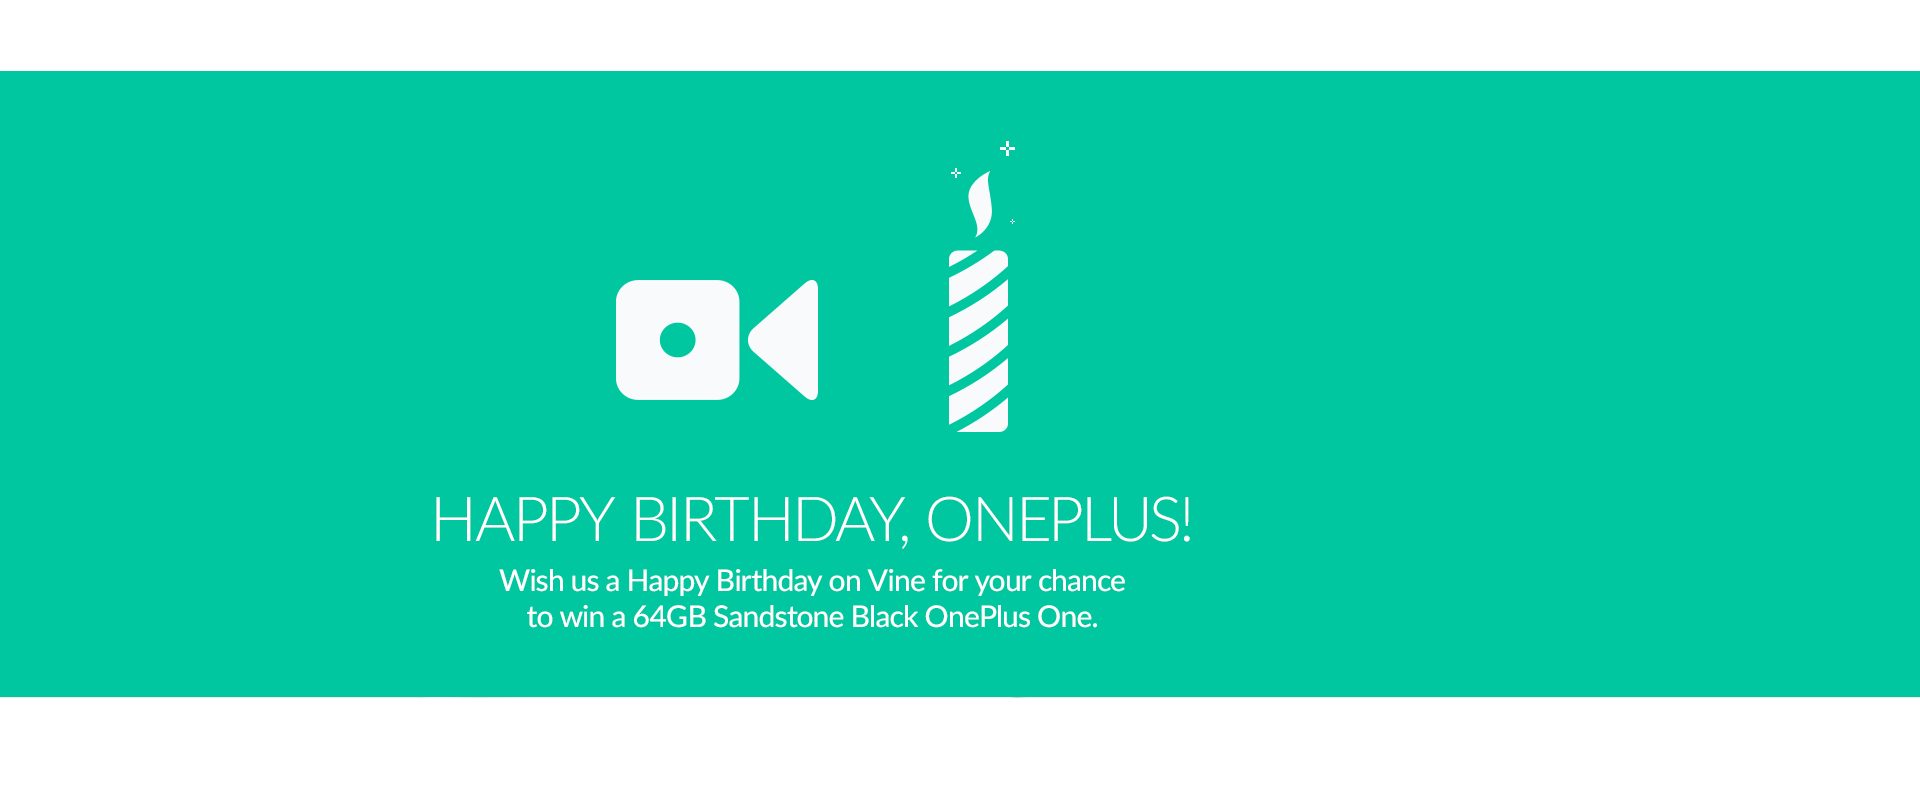 Happy Birthday, OnePlus!